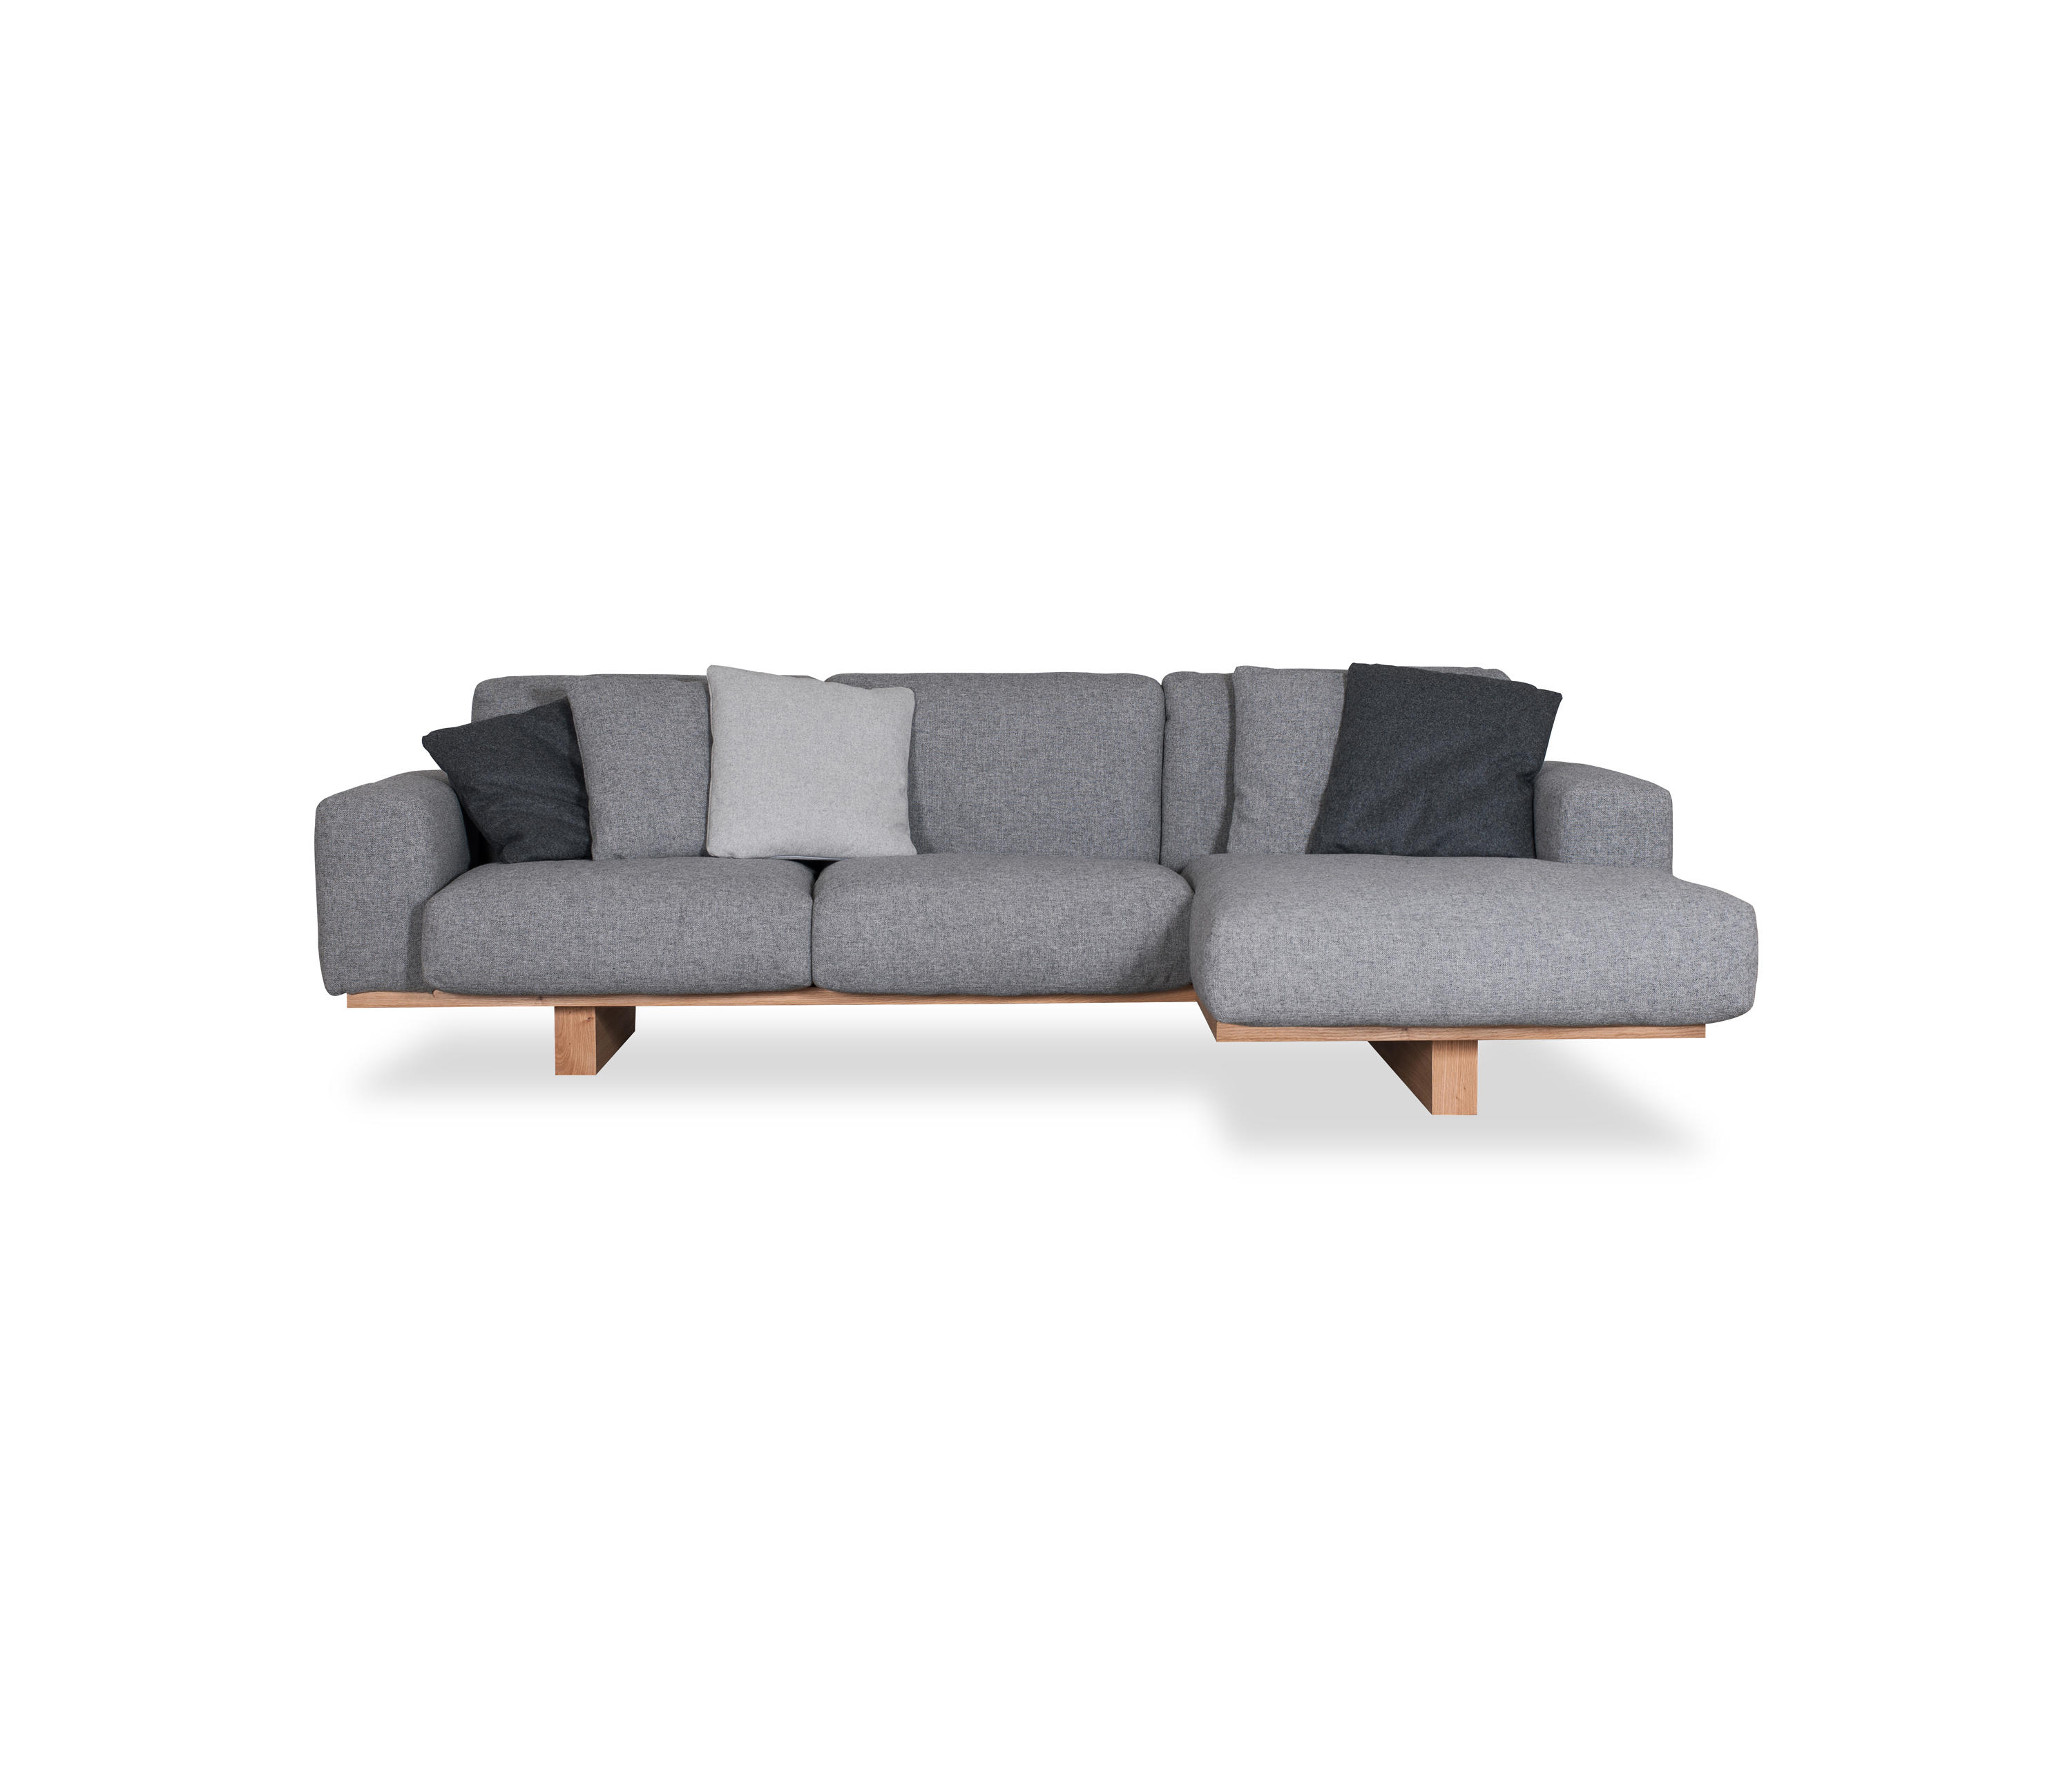 1920 Sofa Bed Hereo Sofa : utah fronte divano b from hereonout.net size 3000 x 2564 jpeg 312kB